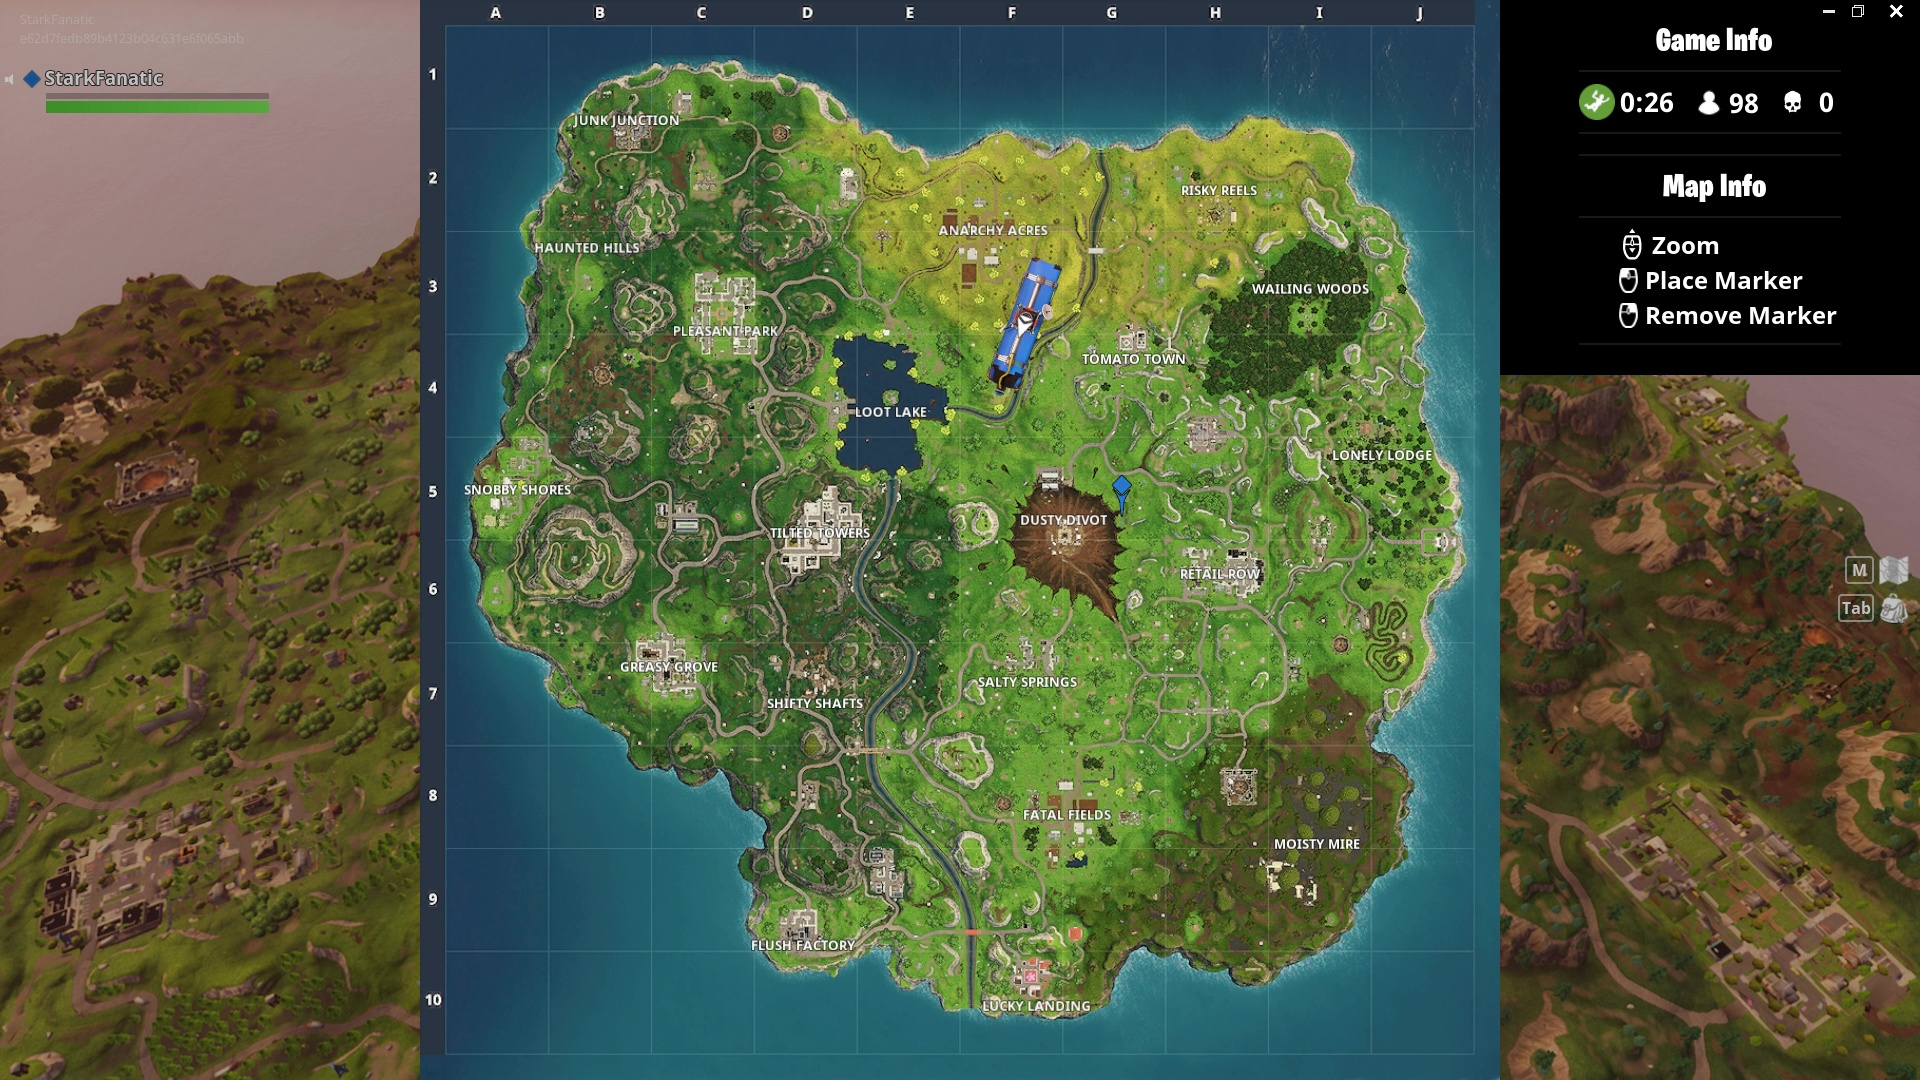 epic games via polygon - season 7 fortnite mappa